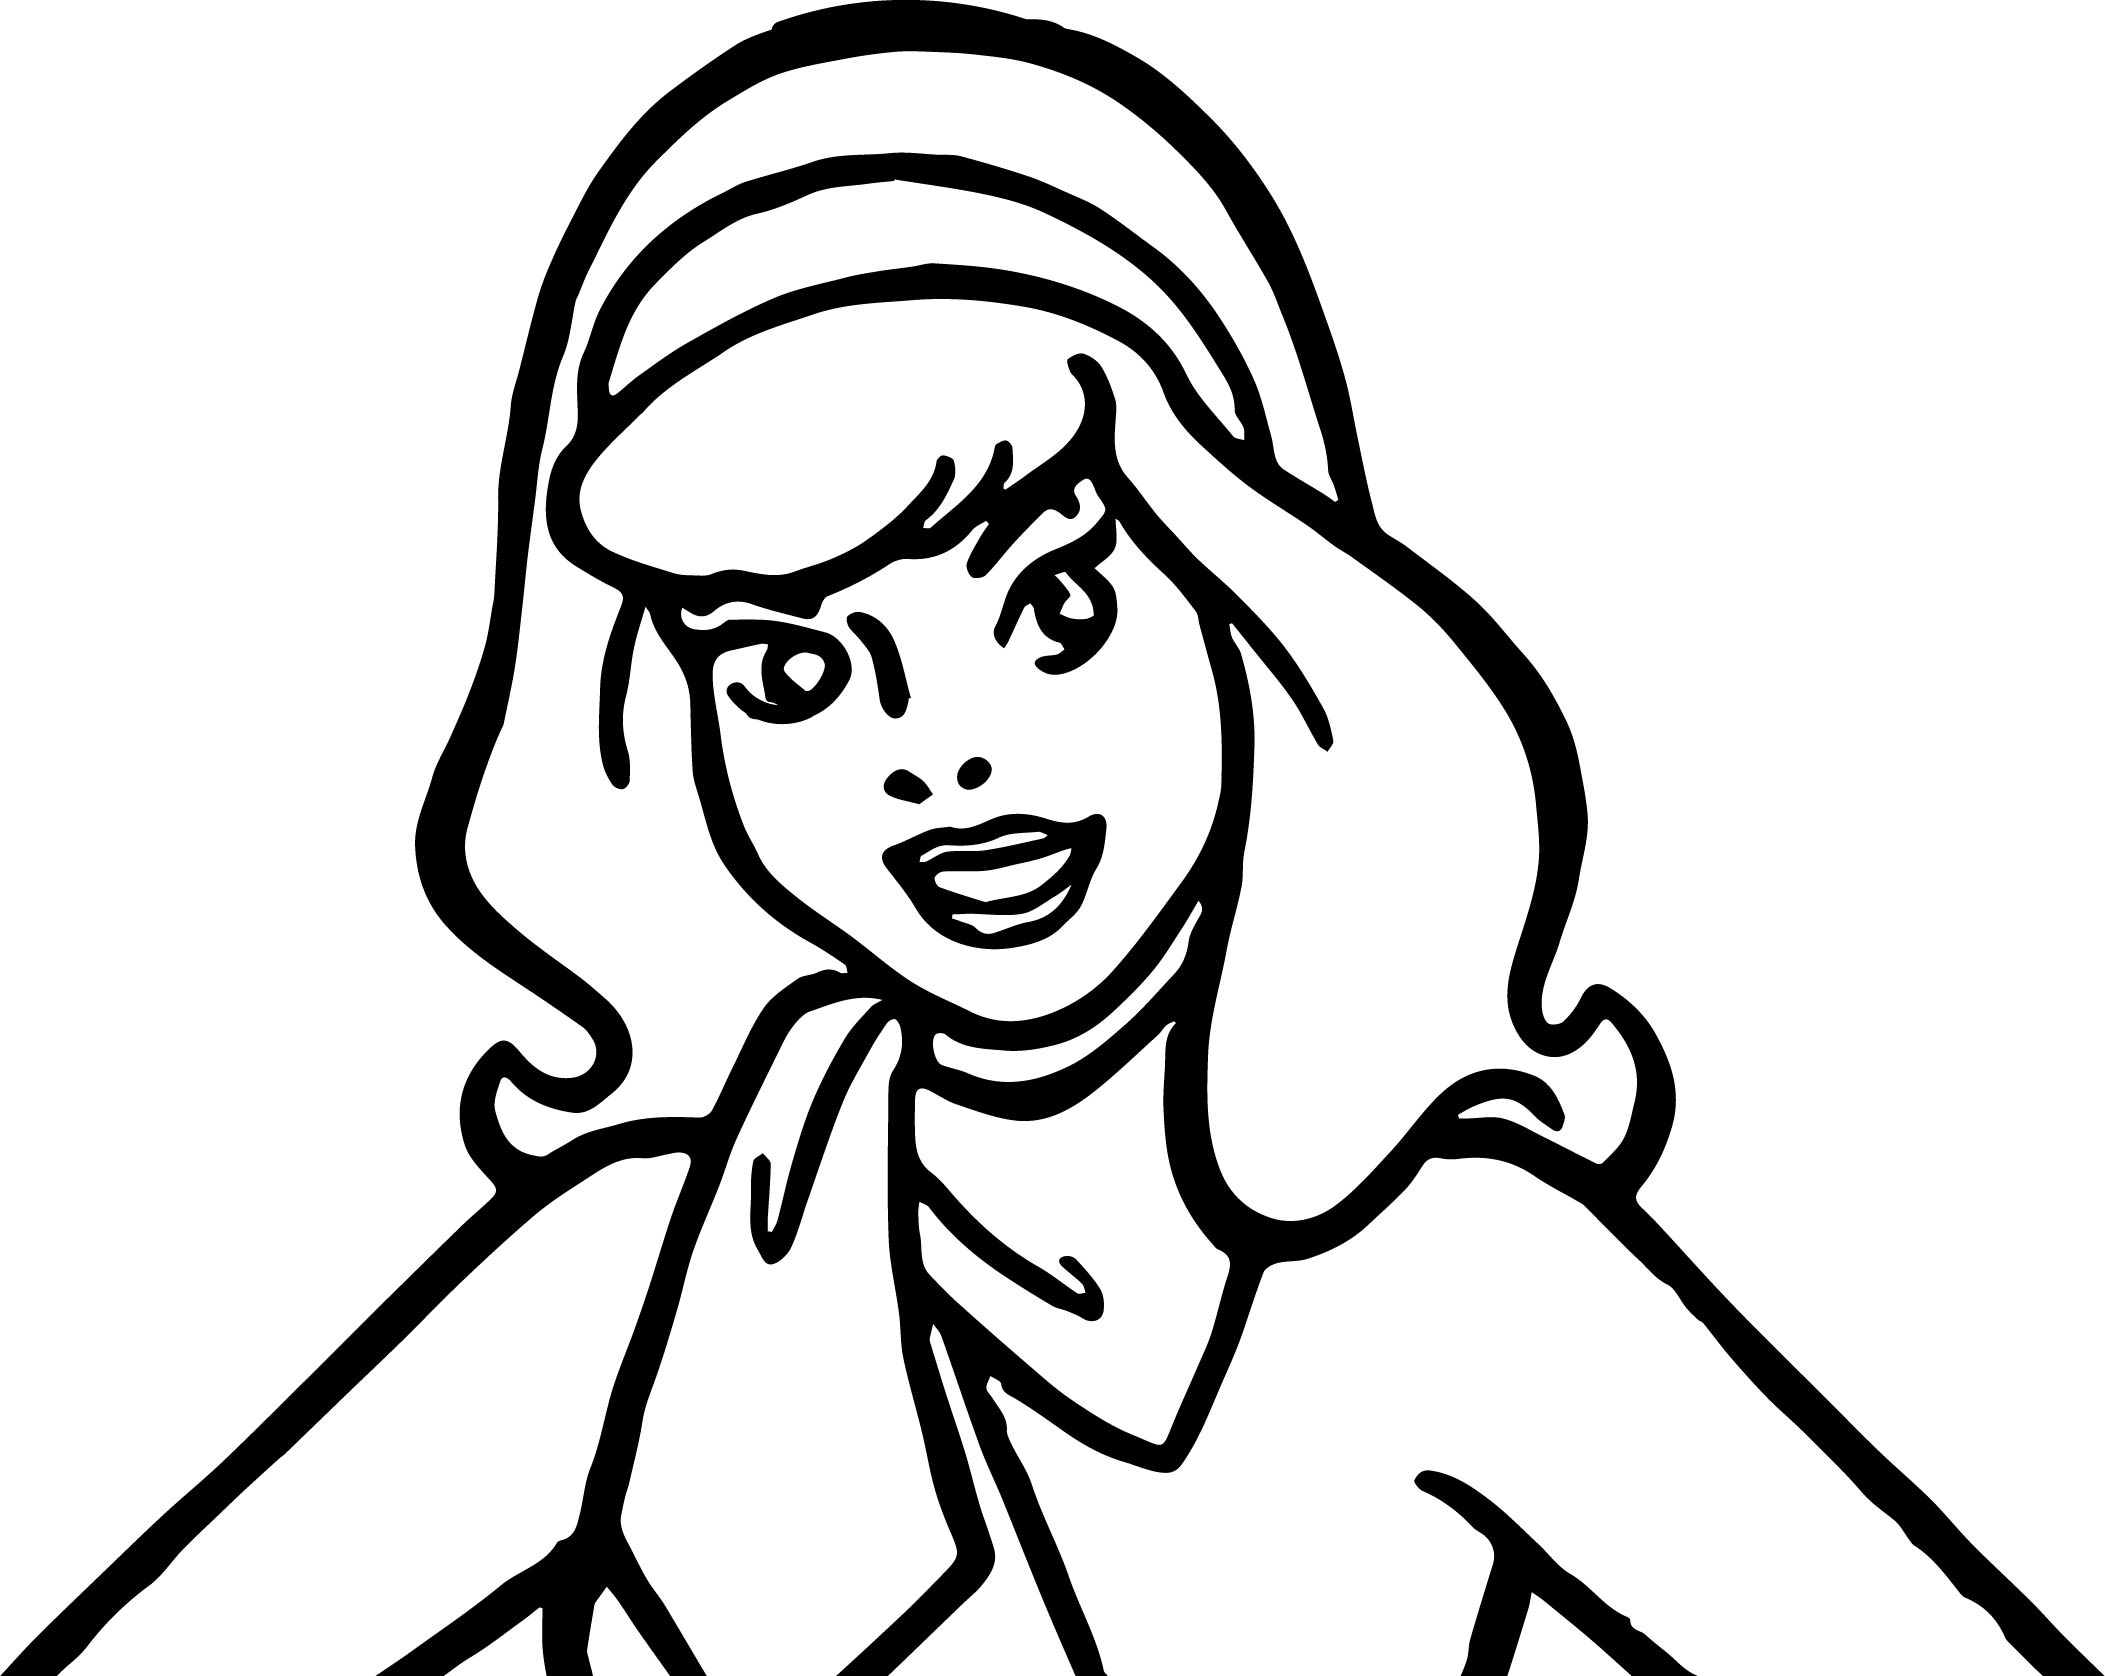 Make Up Coloring Pages Get Sketch Coloring Page